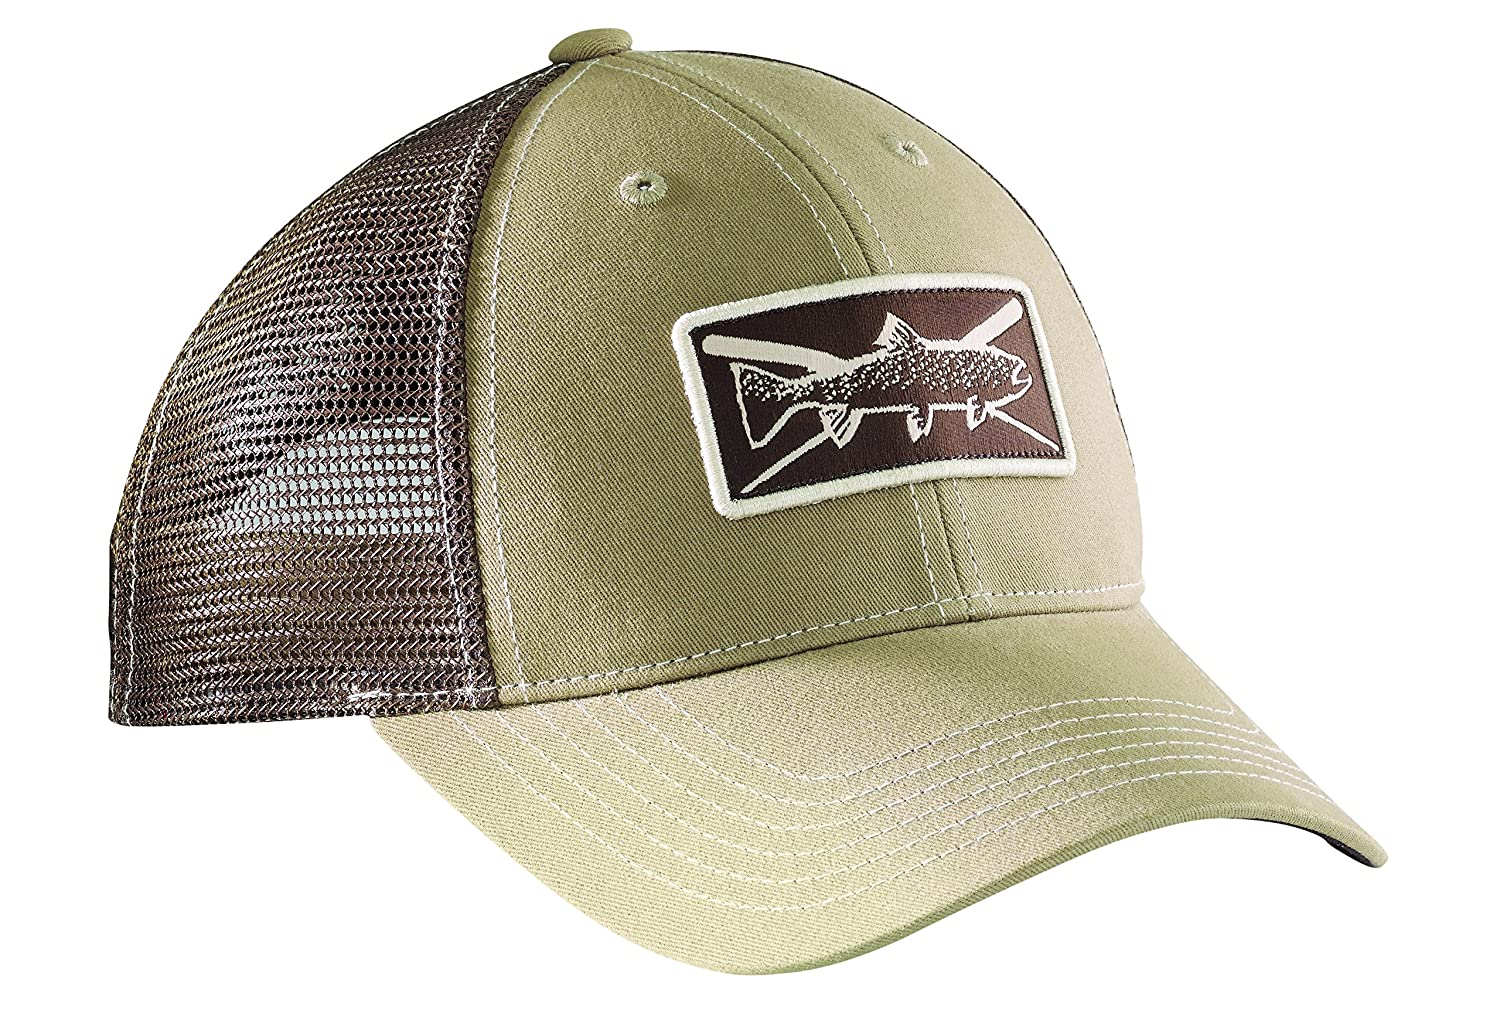 Flying Fisherman H1750 Trout Trucker Hat Khaki/Chocolate